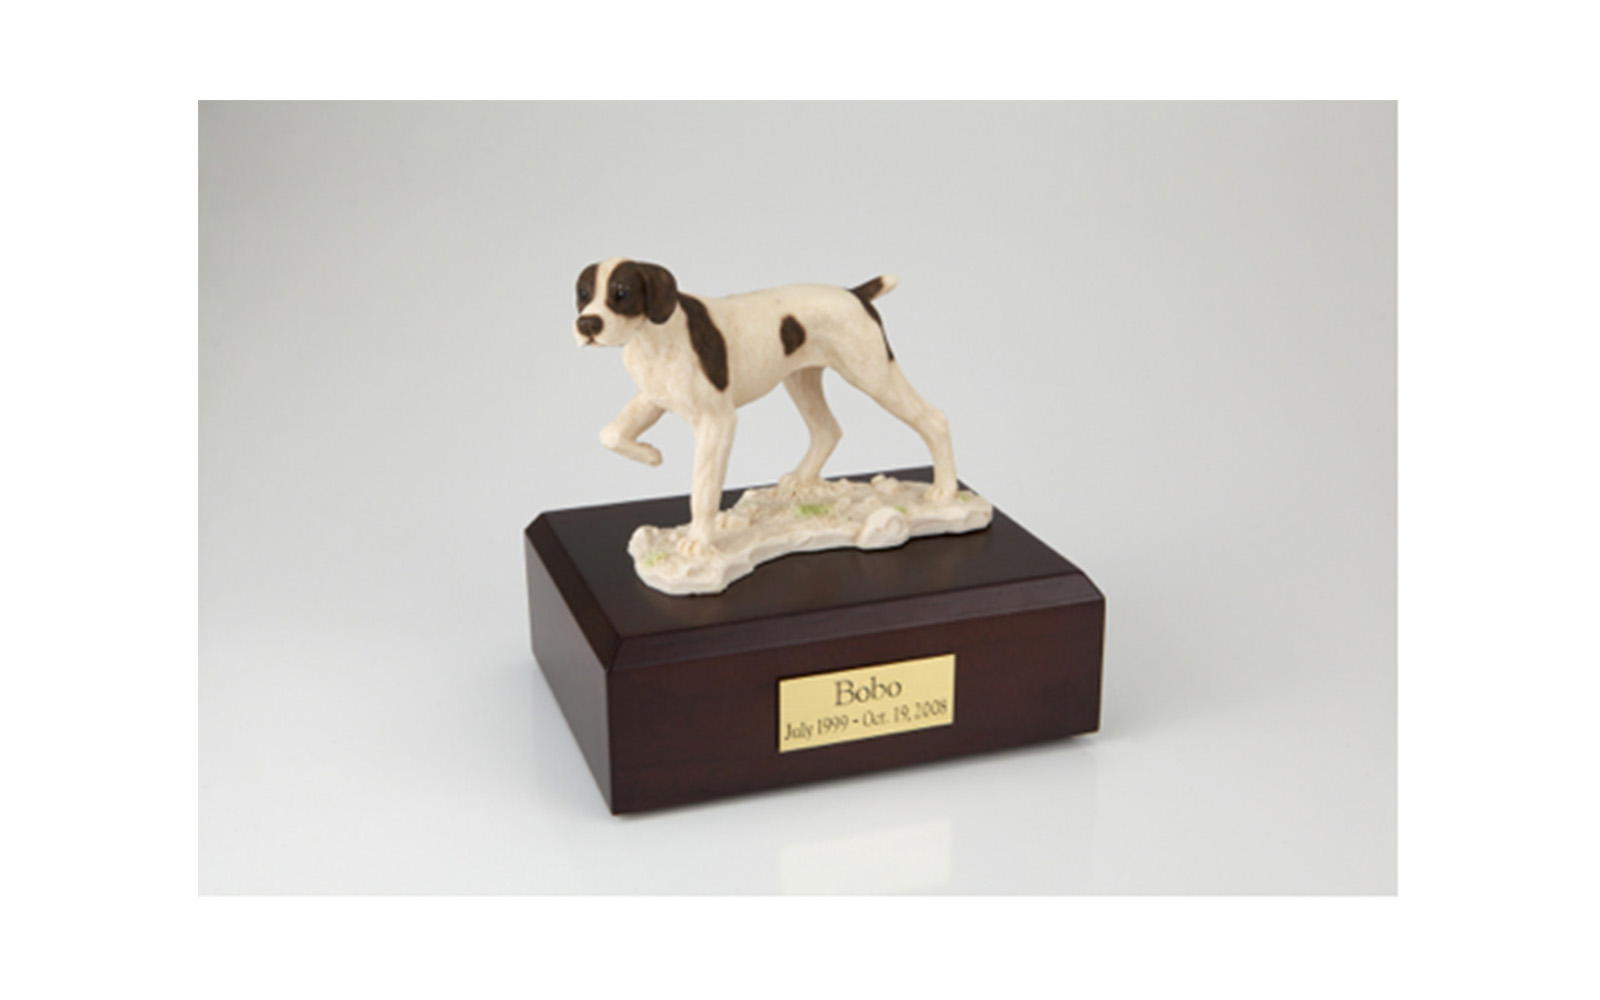 Sculpted Resin   This beautiful sculpted resin figurine urn can be selected with a hardwood base made from solid maple, oak, or walnut. This urn offers you a choice of over 700 different purebred dog and cat figurines, as well as birds, equine, rabbits, and wildlife. Included in the price of this urn is your personal (4 line 100 character) inscription on a premium leaded brass name plate and ground shipping charges.   SMALL: $168.95     (Up to 45 lbs., 55 Cu. Inches)   MEDIUM: $172.95   (46 lbs. – 70 lbs., 85 Cu. Inches)   LARGE: $178.95     (71 lbs. – 95 lbs., 115 Cu. Inches)   XLARGE $186.95    (96 lbs. – 125 lbs., 145 Cu. Inches)